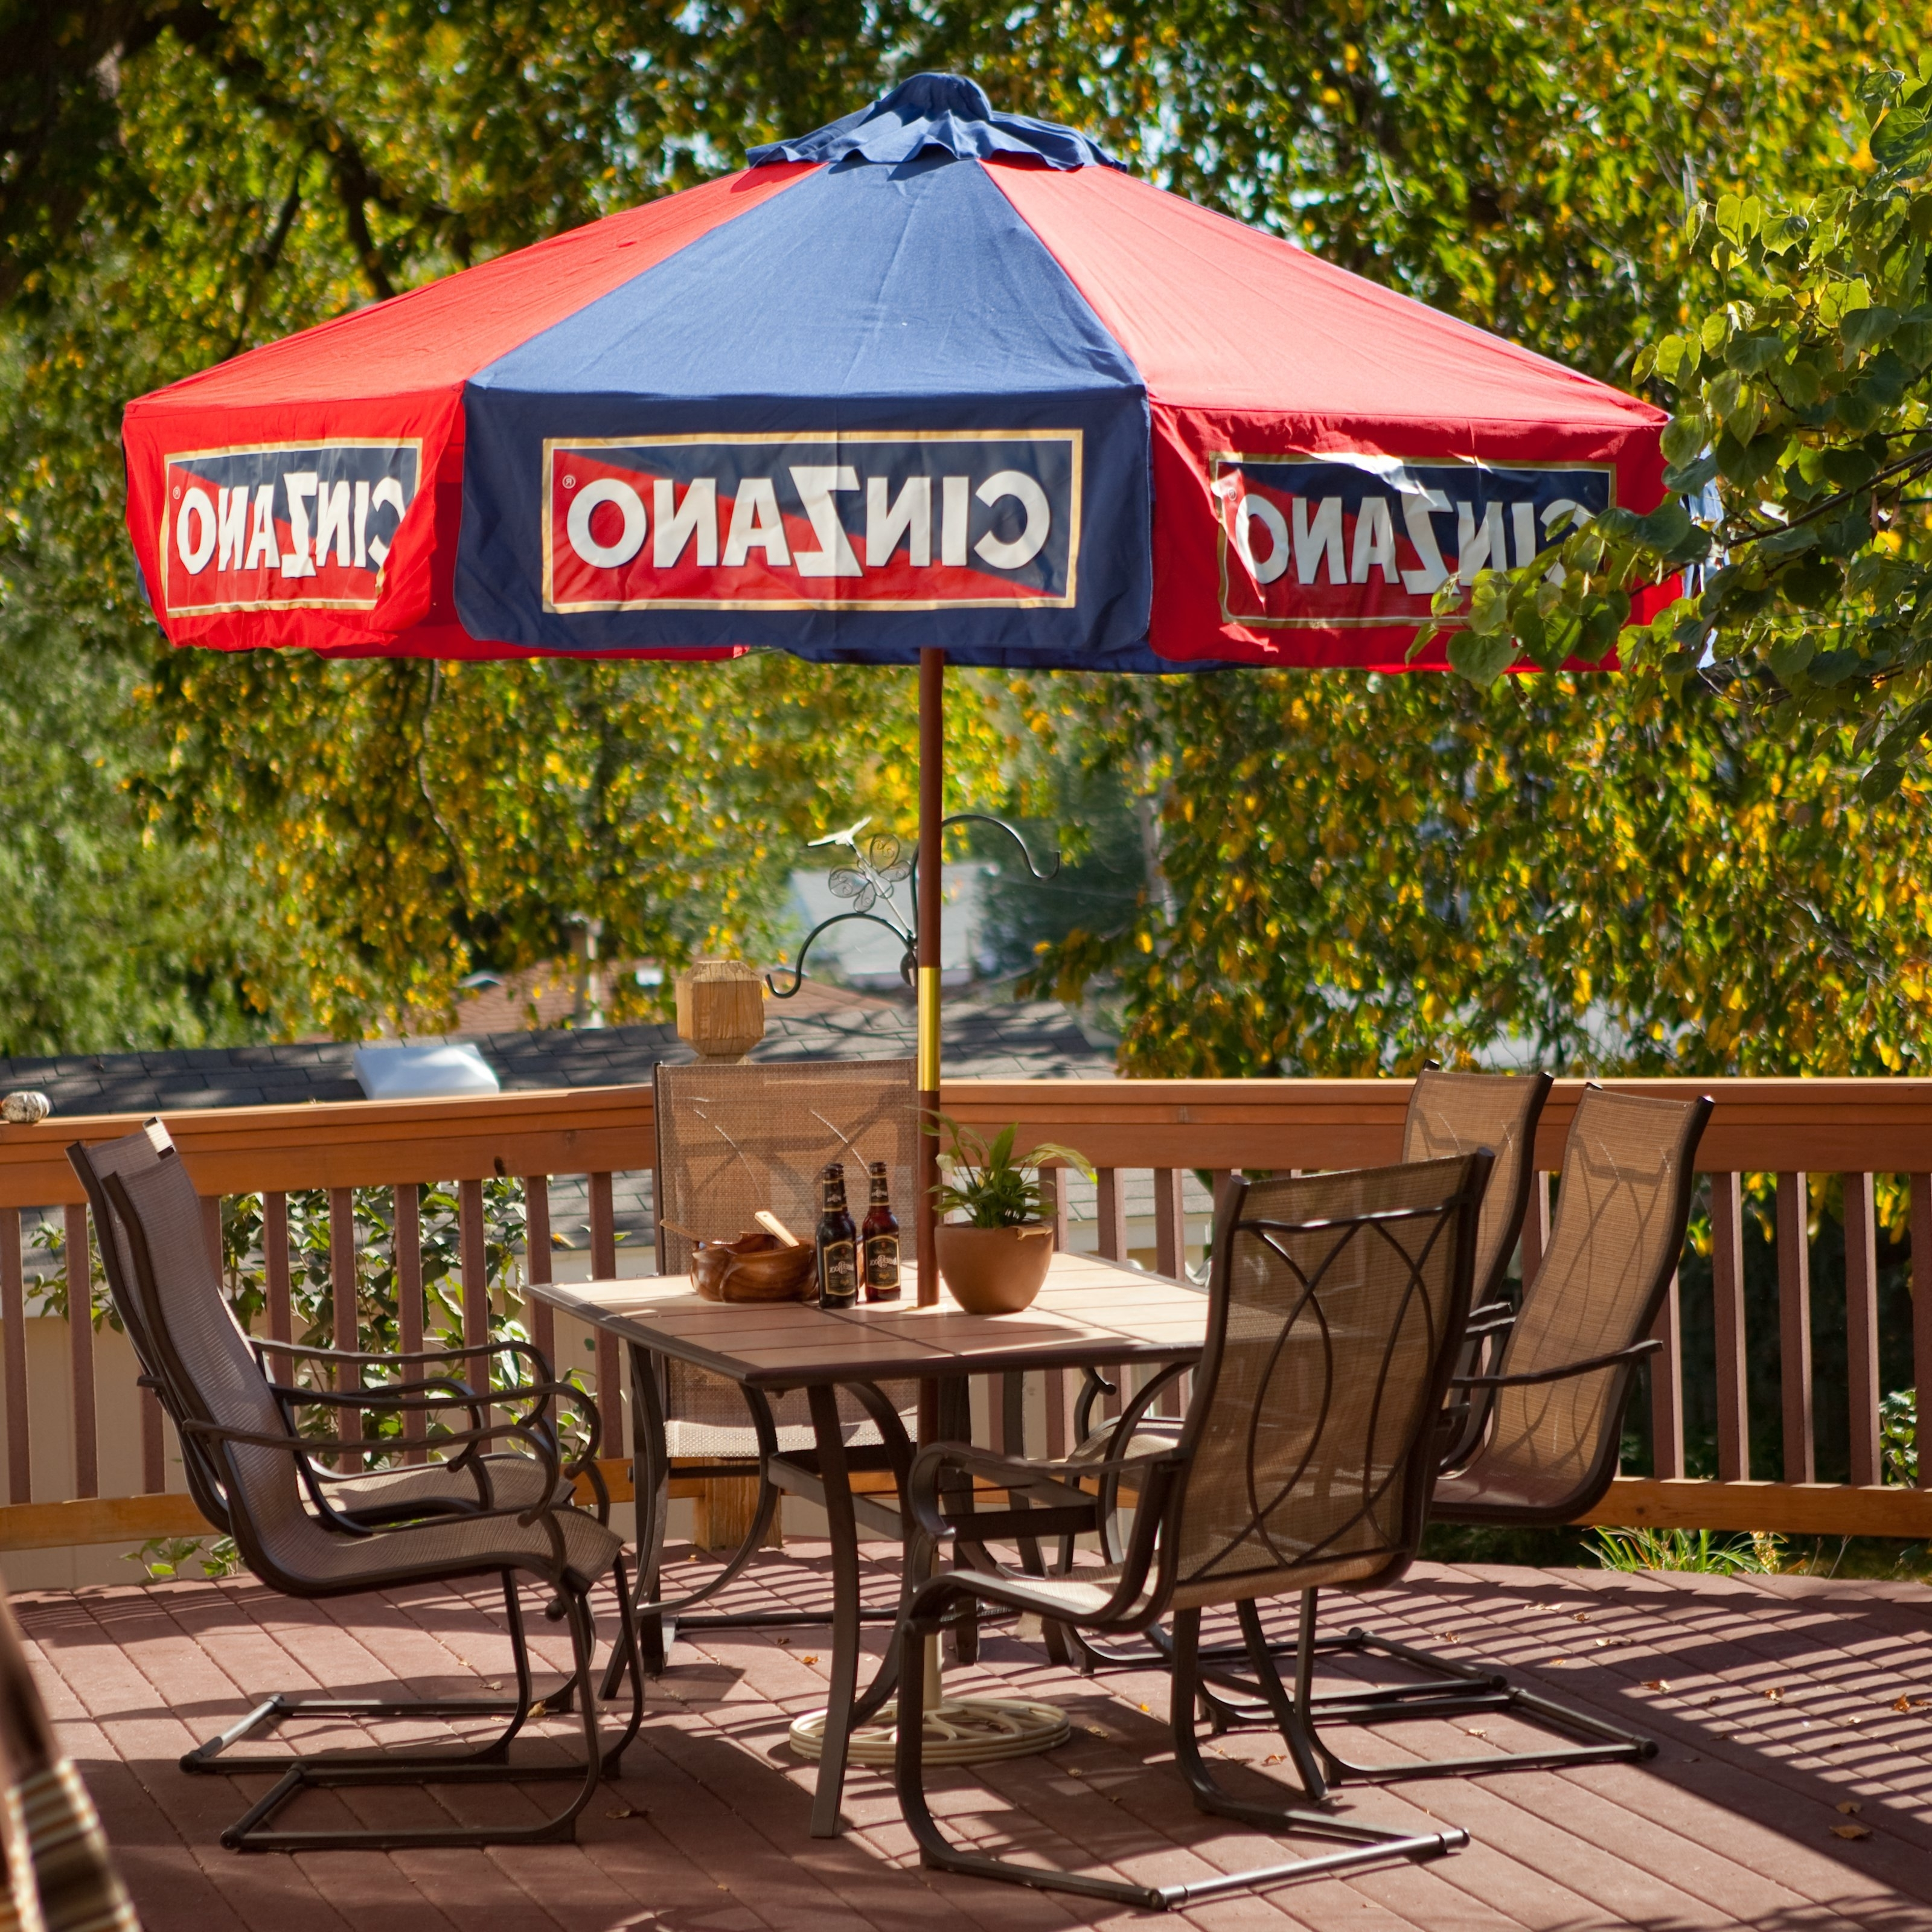 Destinationgear 6 Ft. Aluminum Cinzano Patio Umbrella (Gallery 19 of 20)